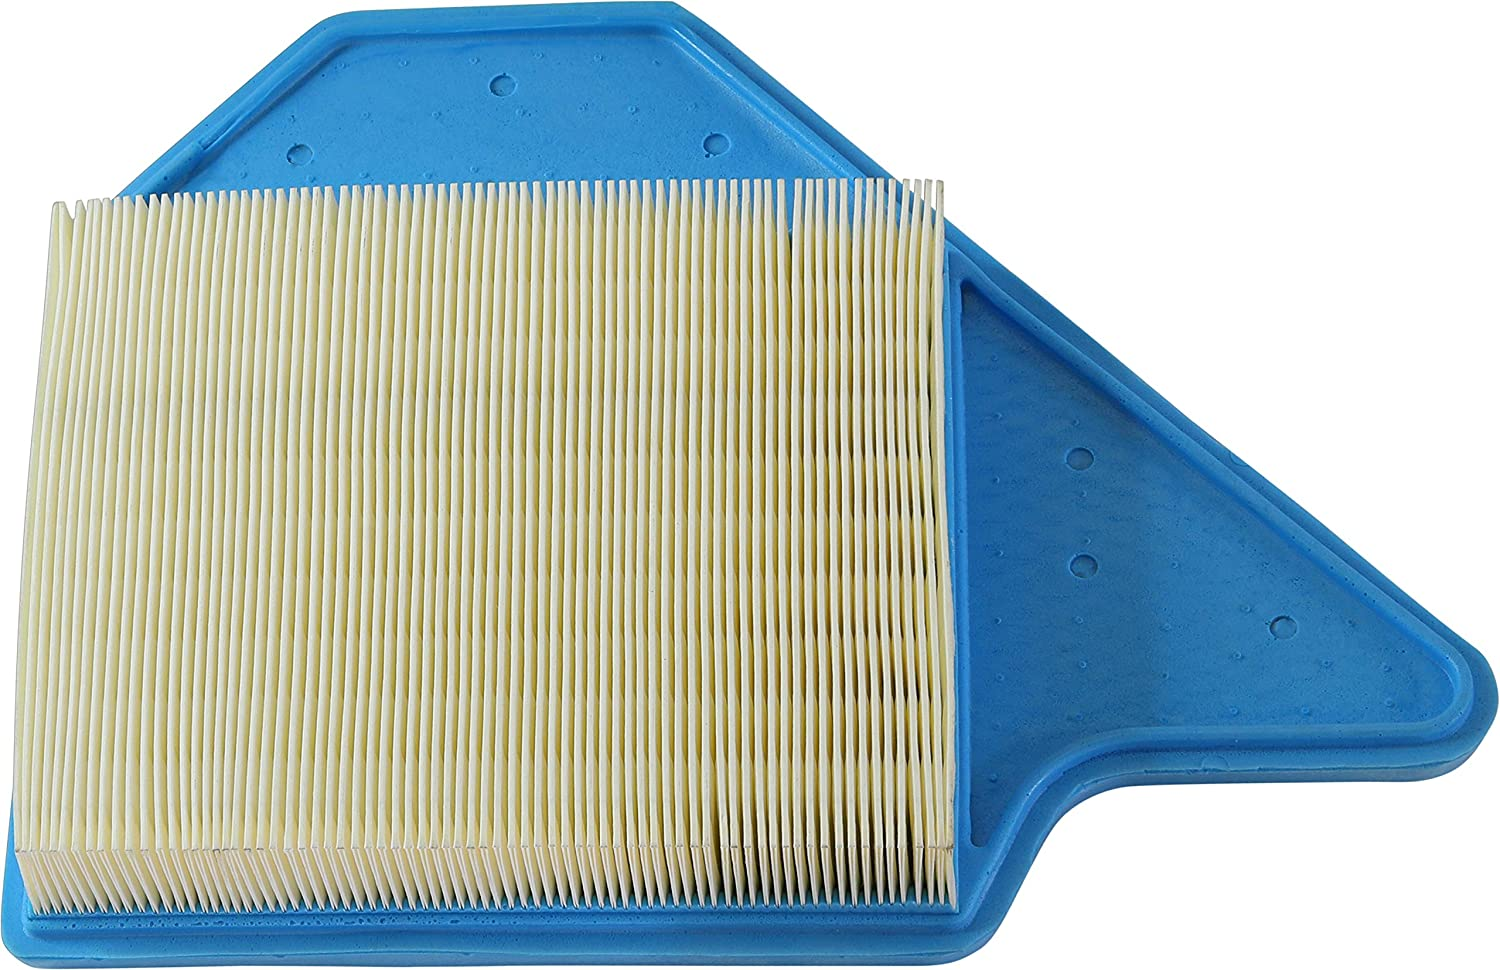 ; Routan 2011-2014 EPAuto GP050V 2012-2015 2011-2019 ; C//V ; Town /& Country CA11050 Replacement for Volkswagen//Chrysler//Audi Extra Guard Panel Air Filter for Grand Caravan 2011-2016